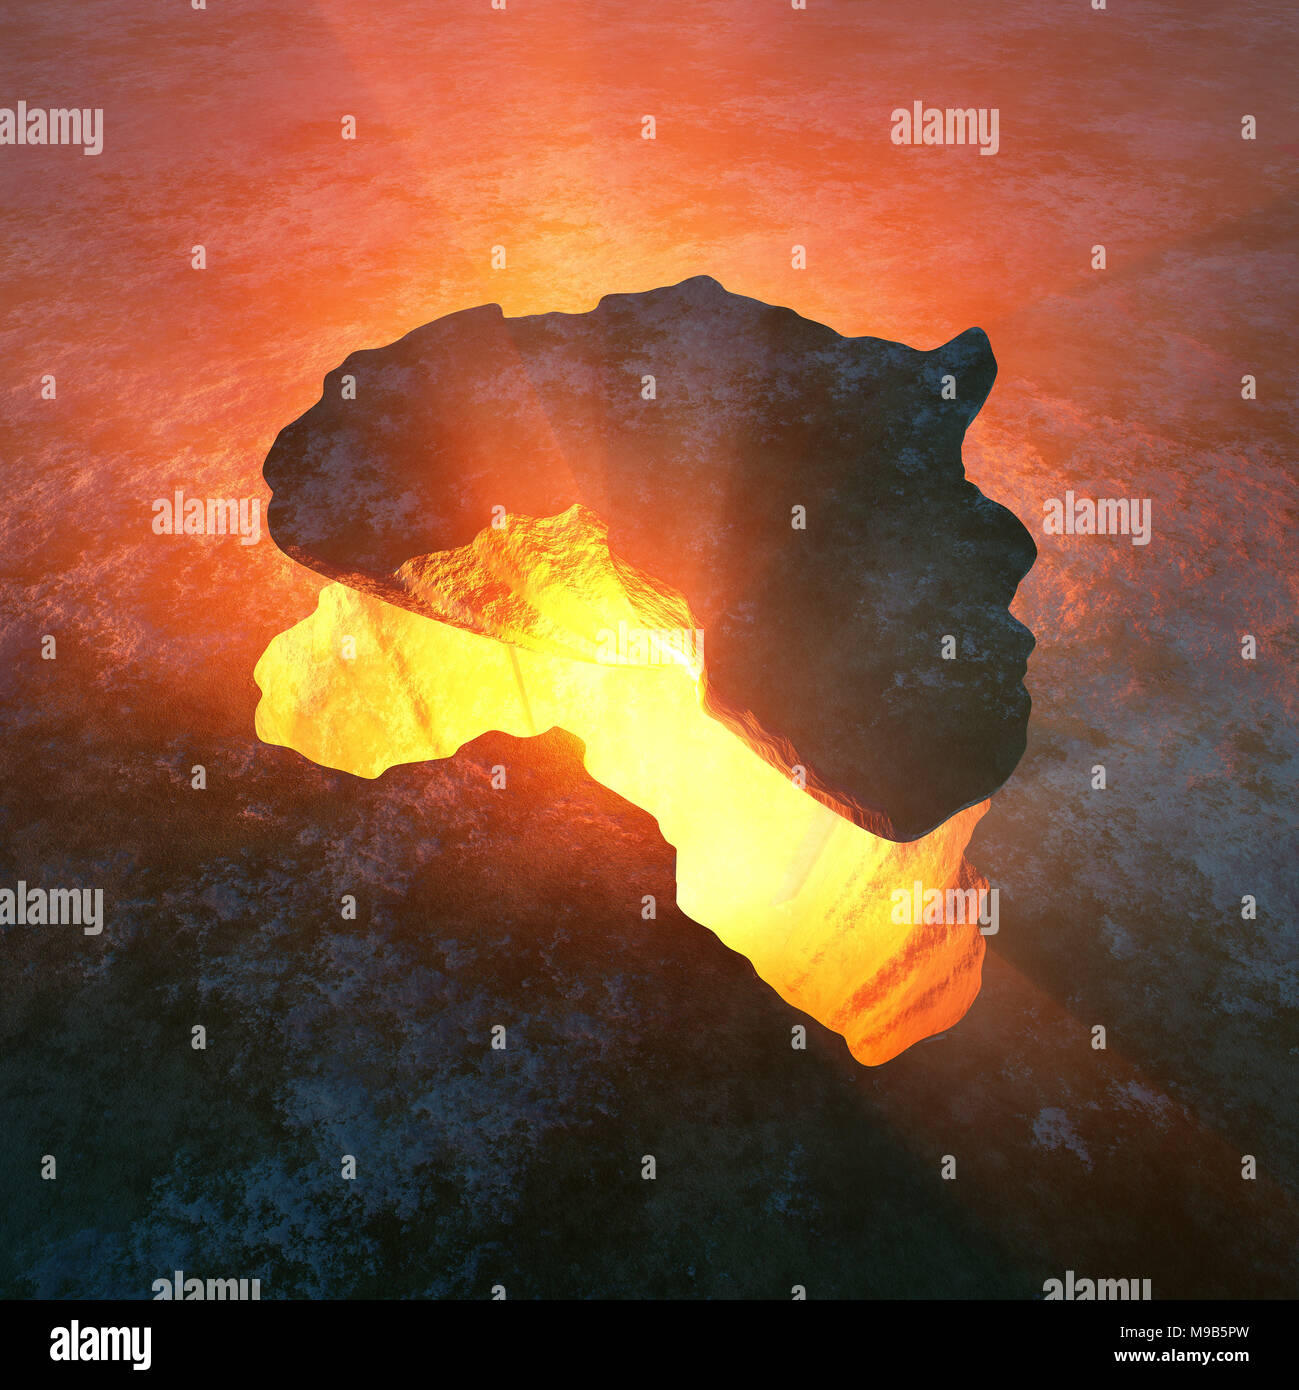 Continent of Africa as solid rock ripped from a red hot hole in the earth. Conceptual 3D rendered artwork - Stock Image